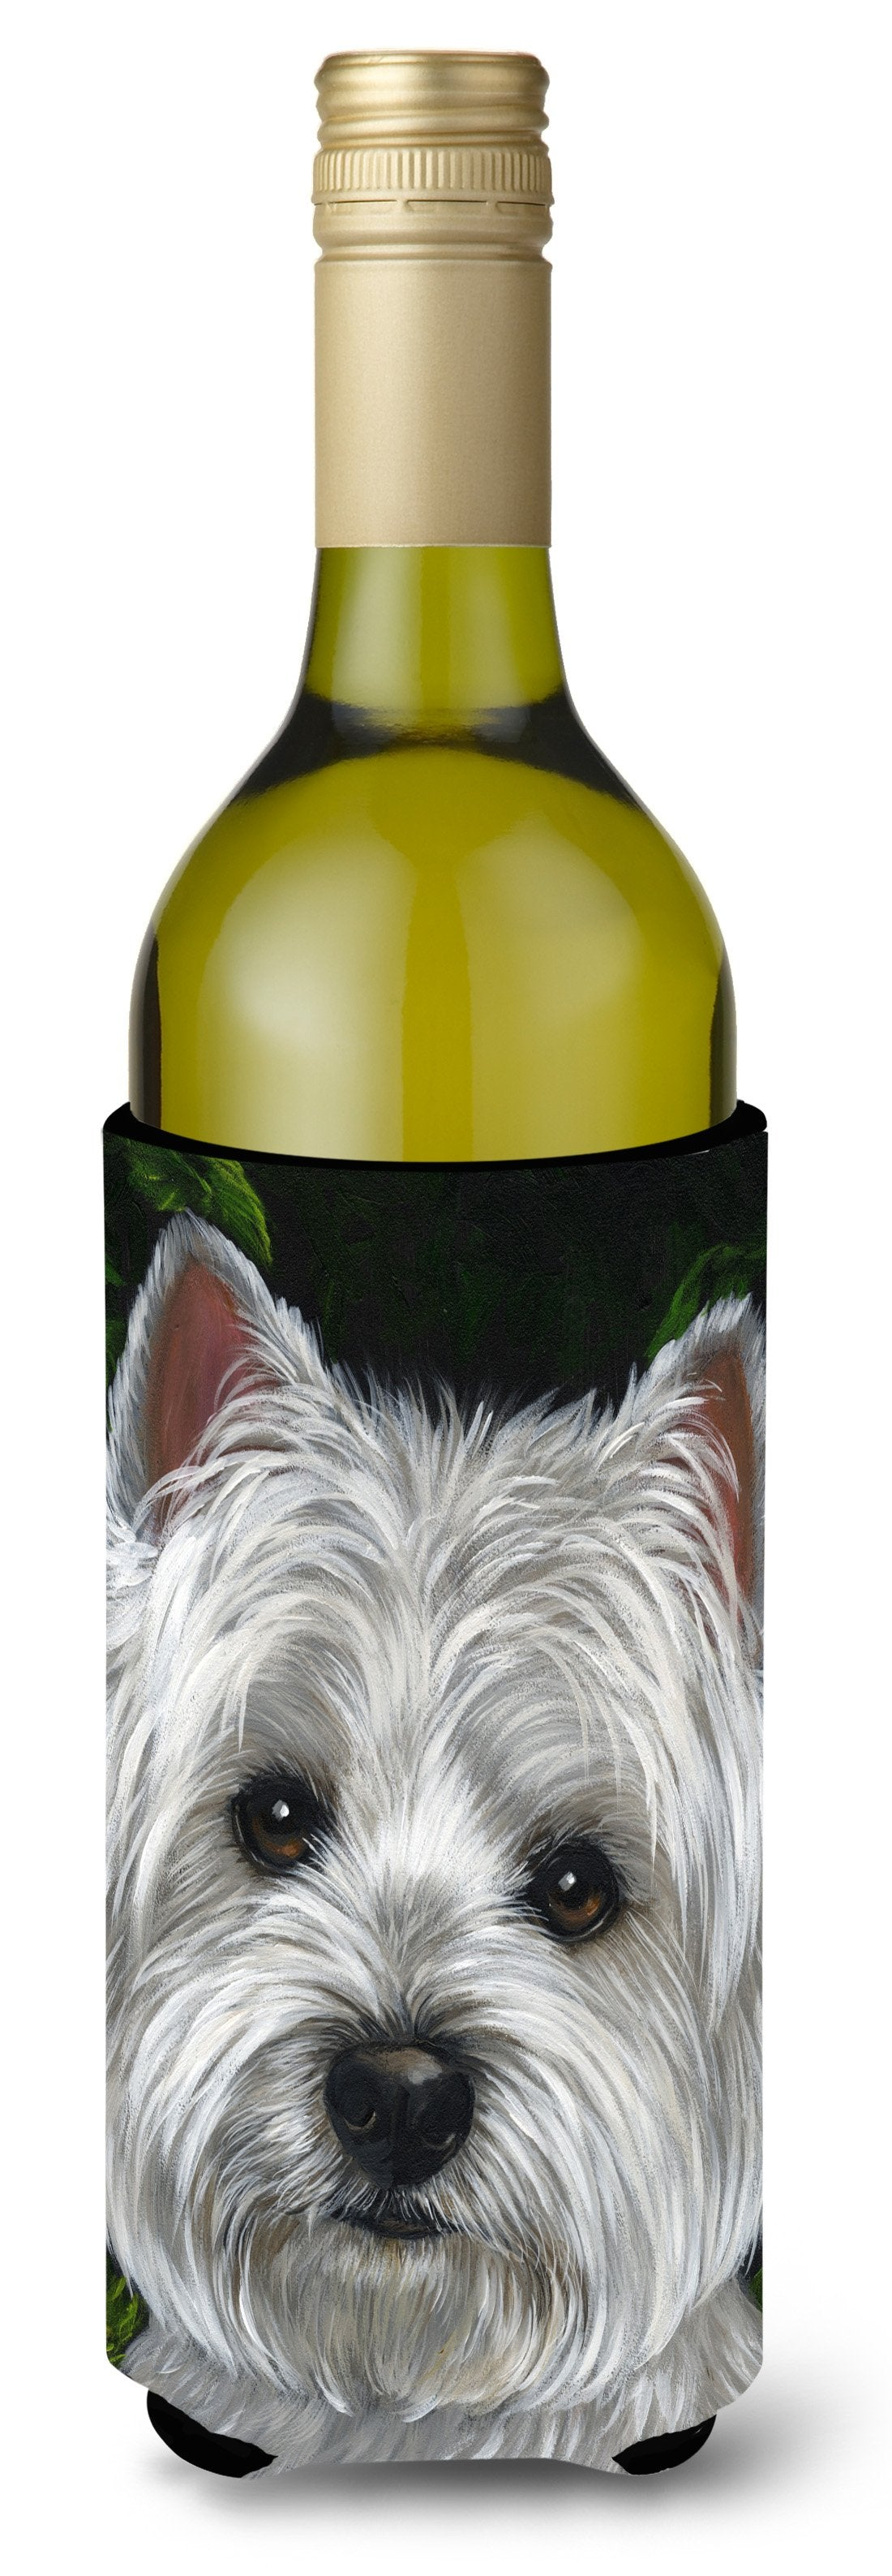 Westie Baby Face Wine Bottle Hugger PPP3201LITERK by Caroline's Treasures